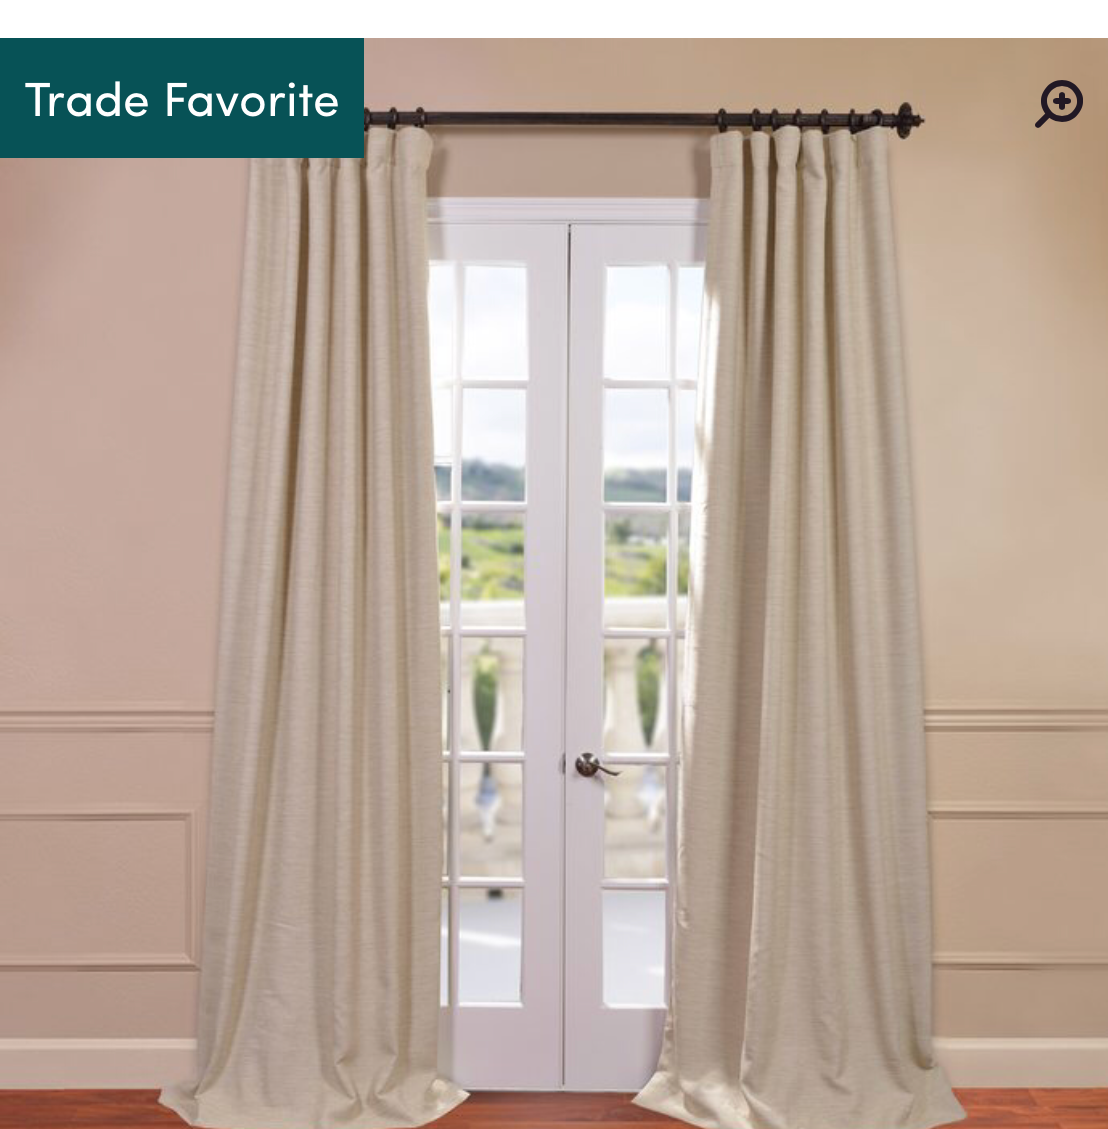 Freemansburg Room Darkening Thermal Curtains: Wayfair $40.00 -